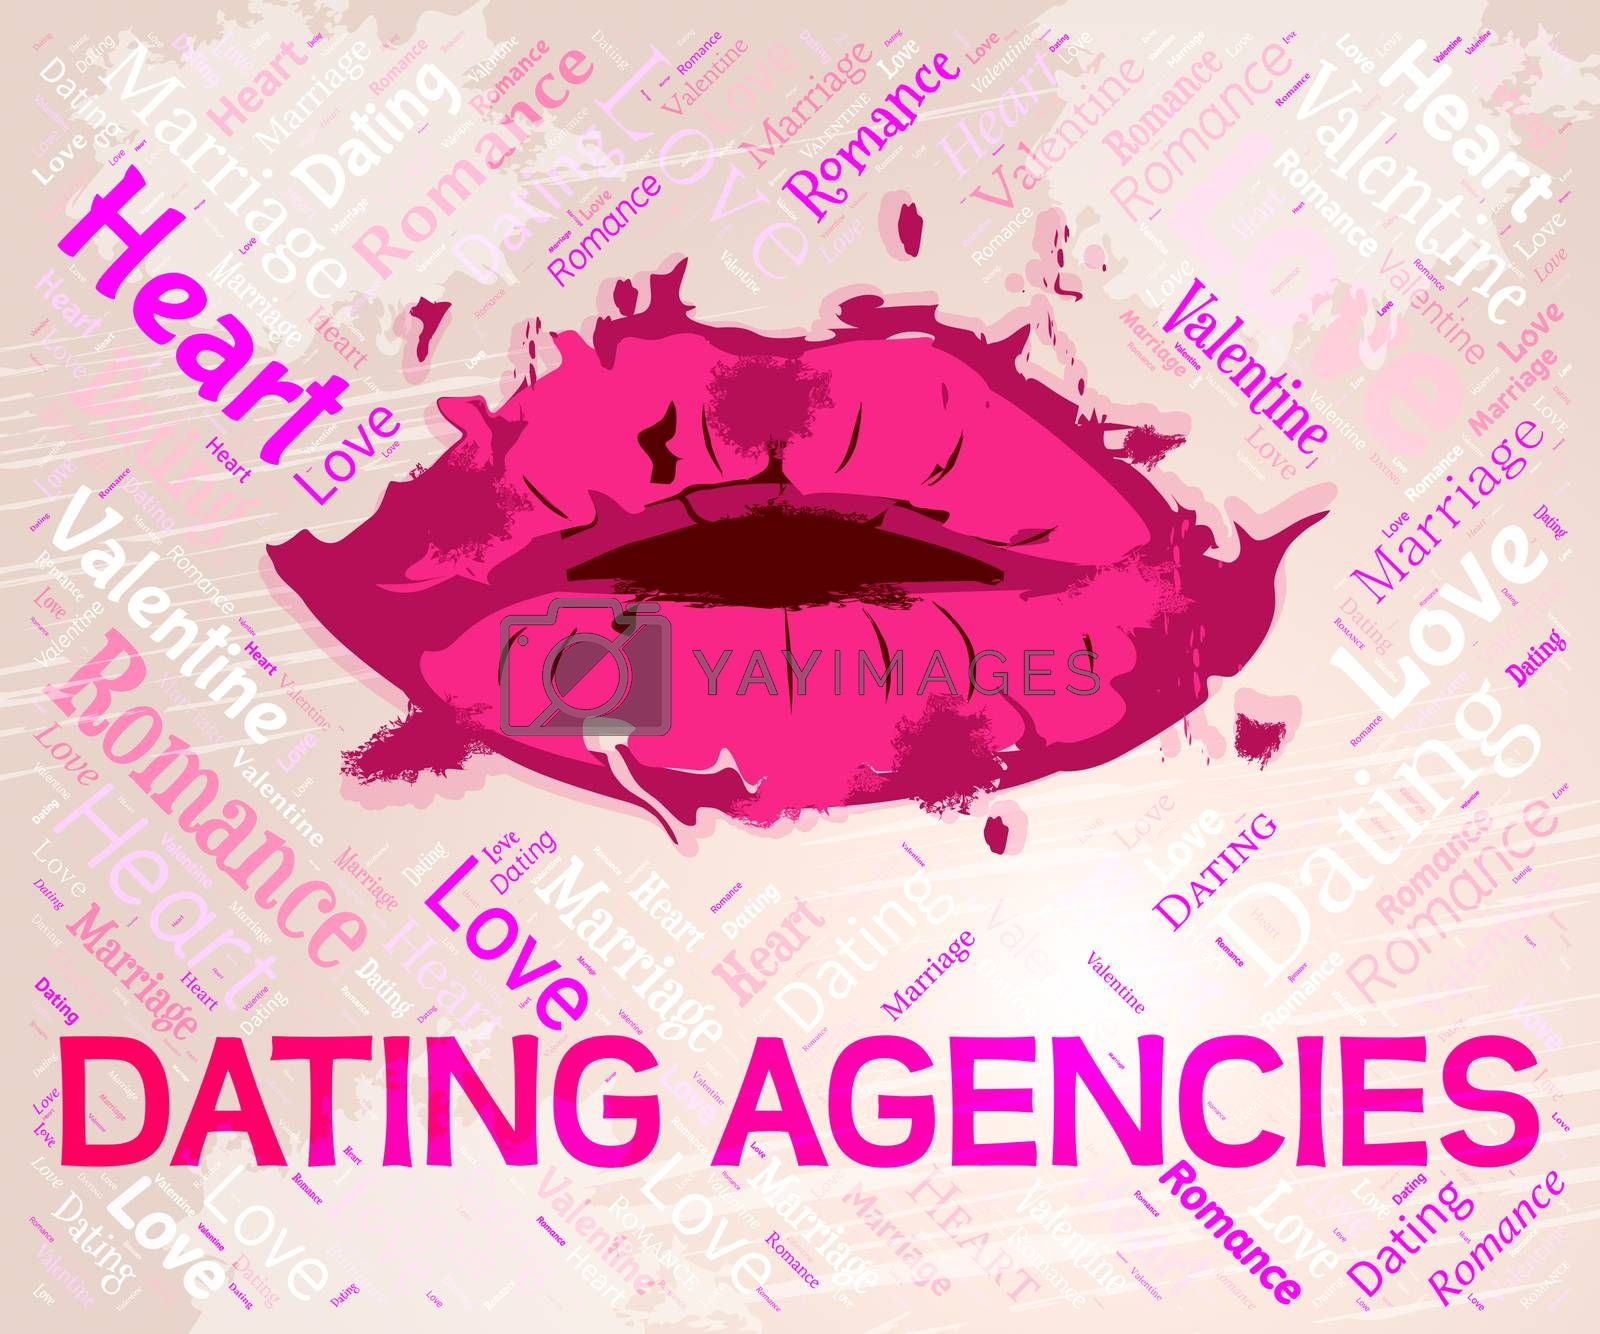 Dating Agencies Representing Company Partner And Agency